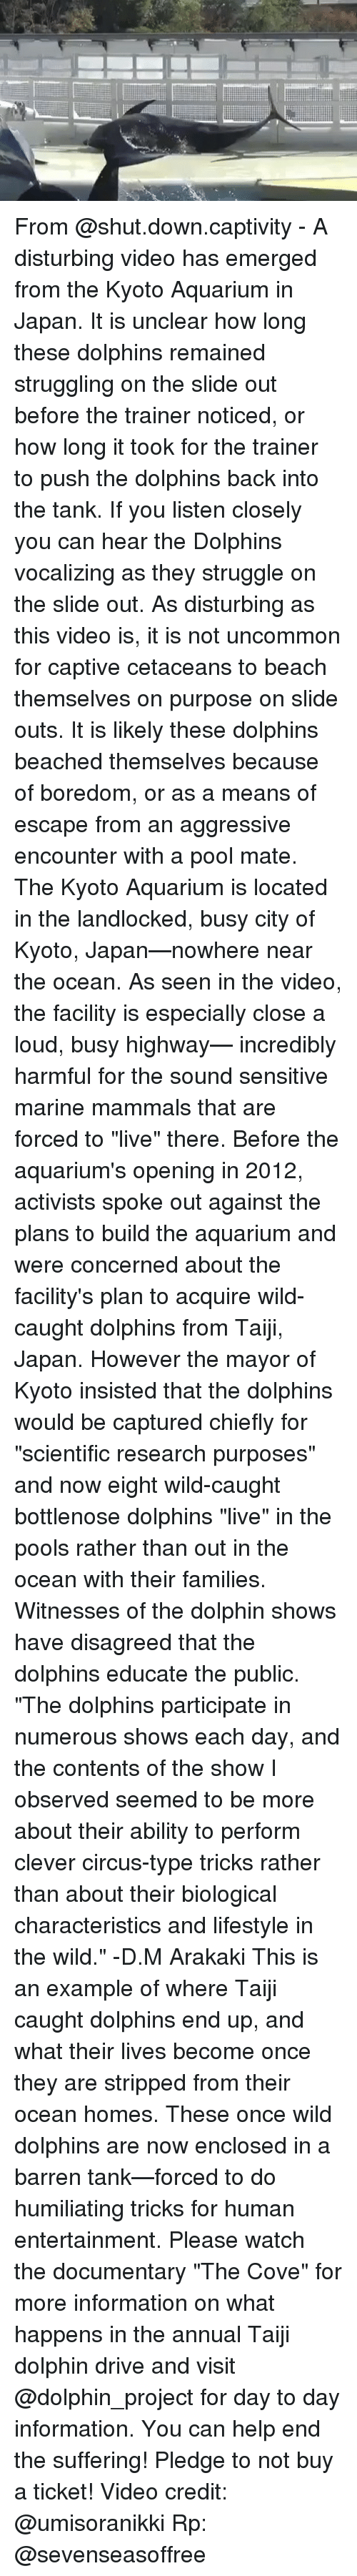 What are some examples of dolphin tricks?